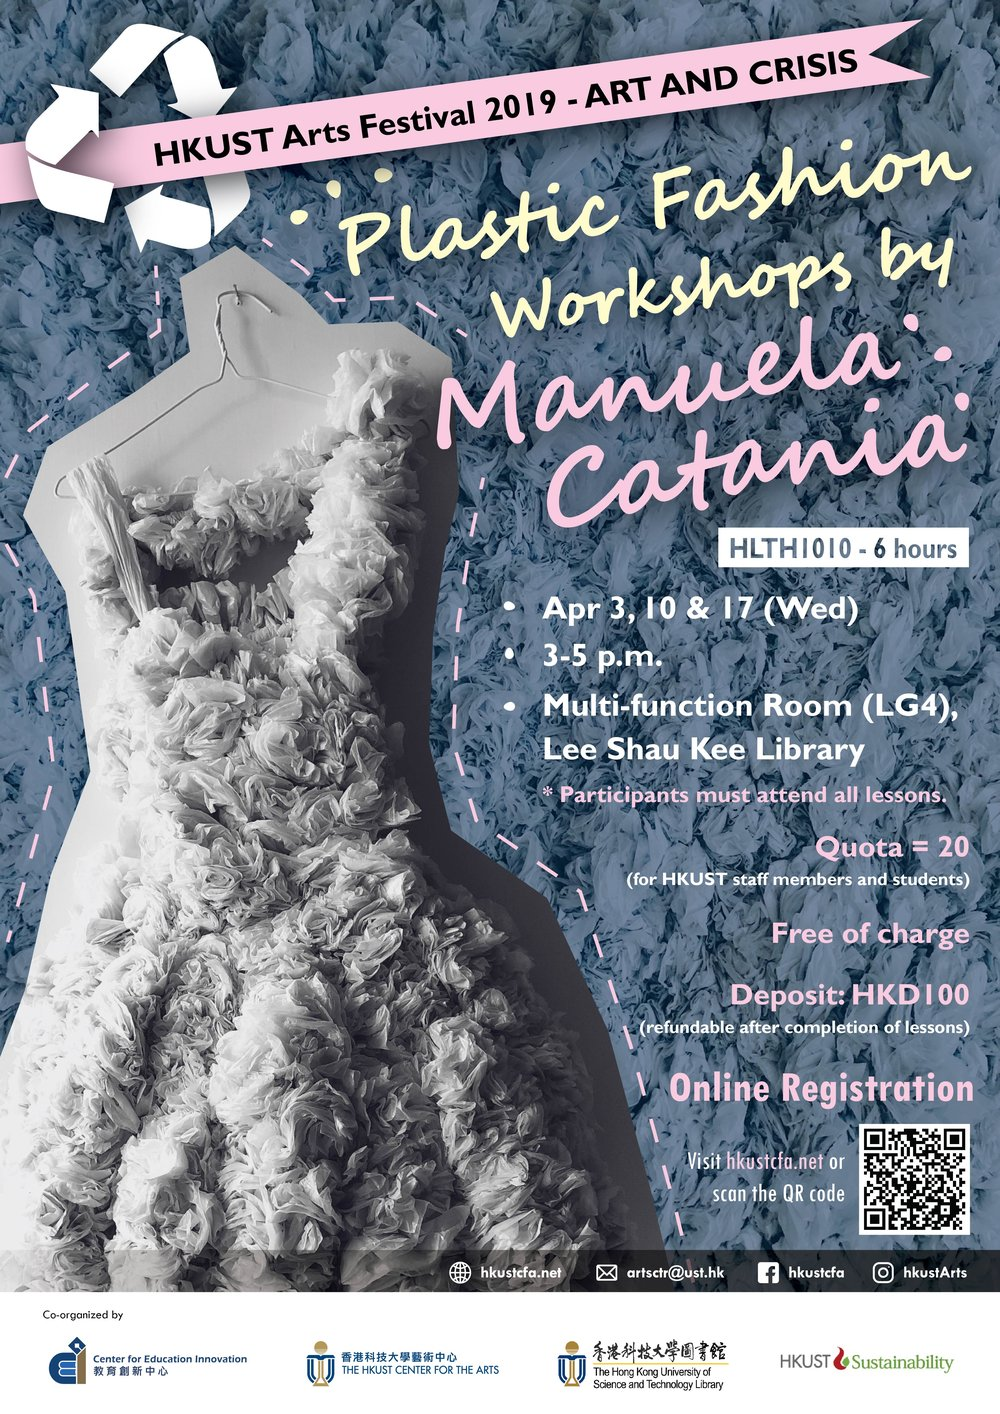 Poster_Plastic Fashion Workshop_20190403_10_17-01.jpg